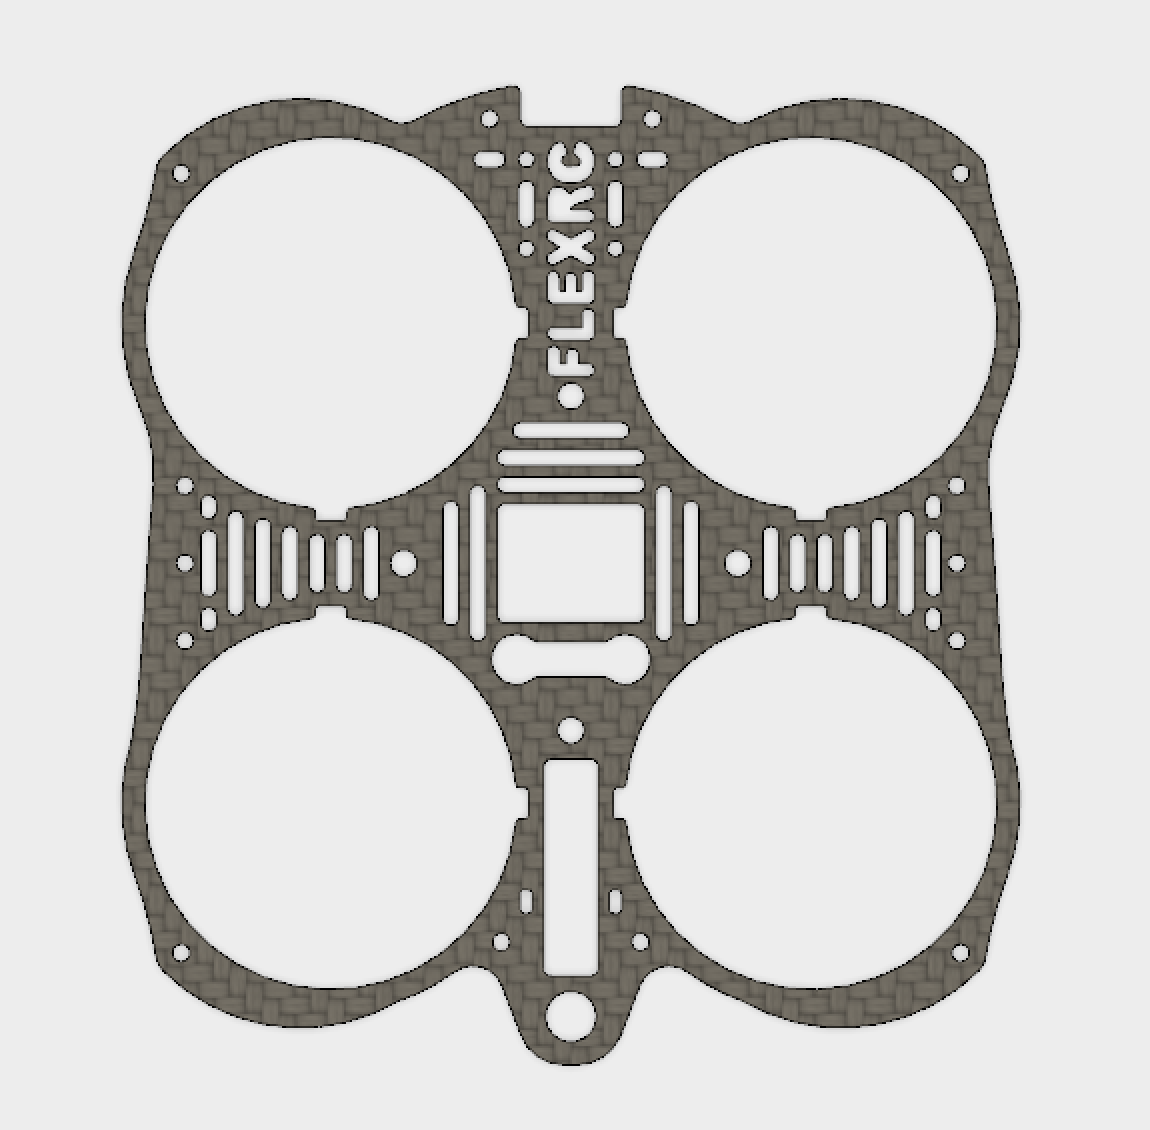 Mini Owl - Secondary Plate without Motor mounts